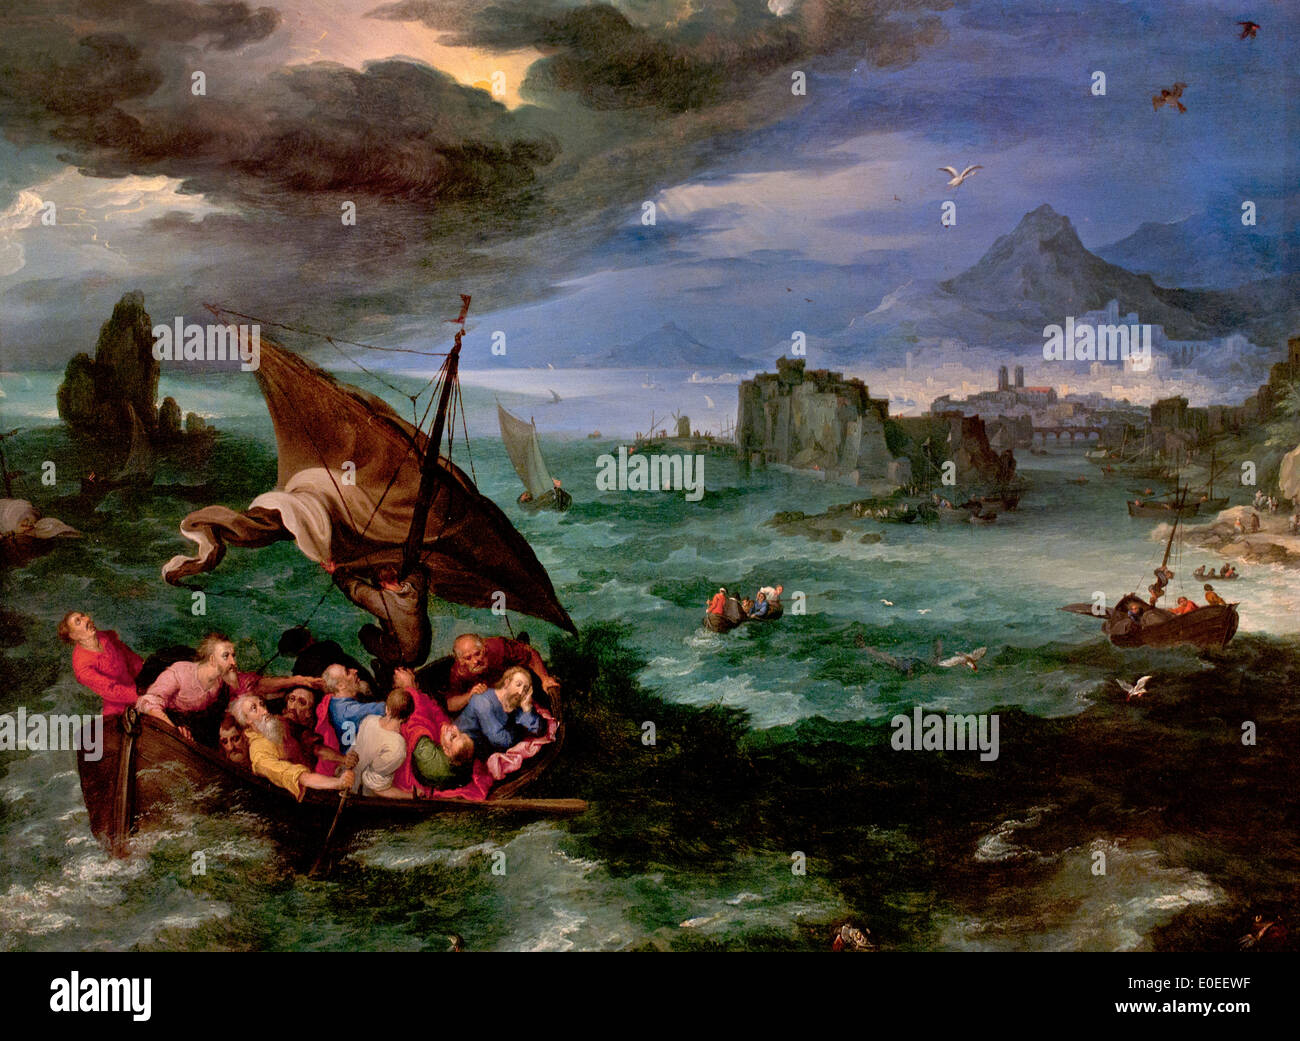 Storm on the sea of galilee stock photos storm on the sea of christ in the storm on the sea of galilee jan brueghel the elder 1568 publicscrutiny Choice Image